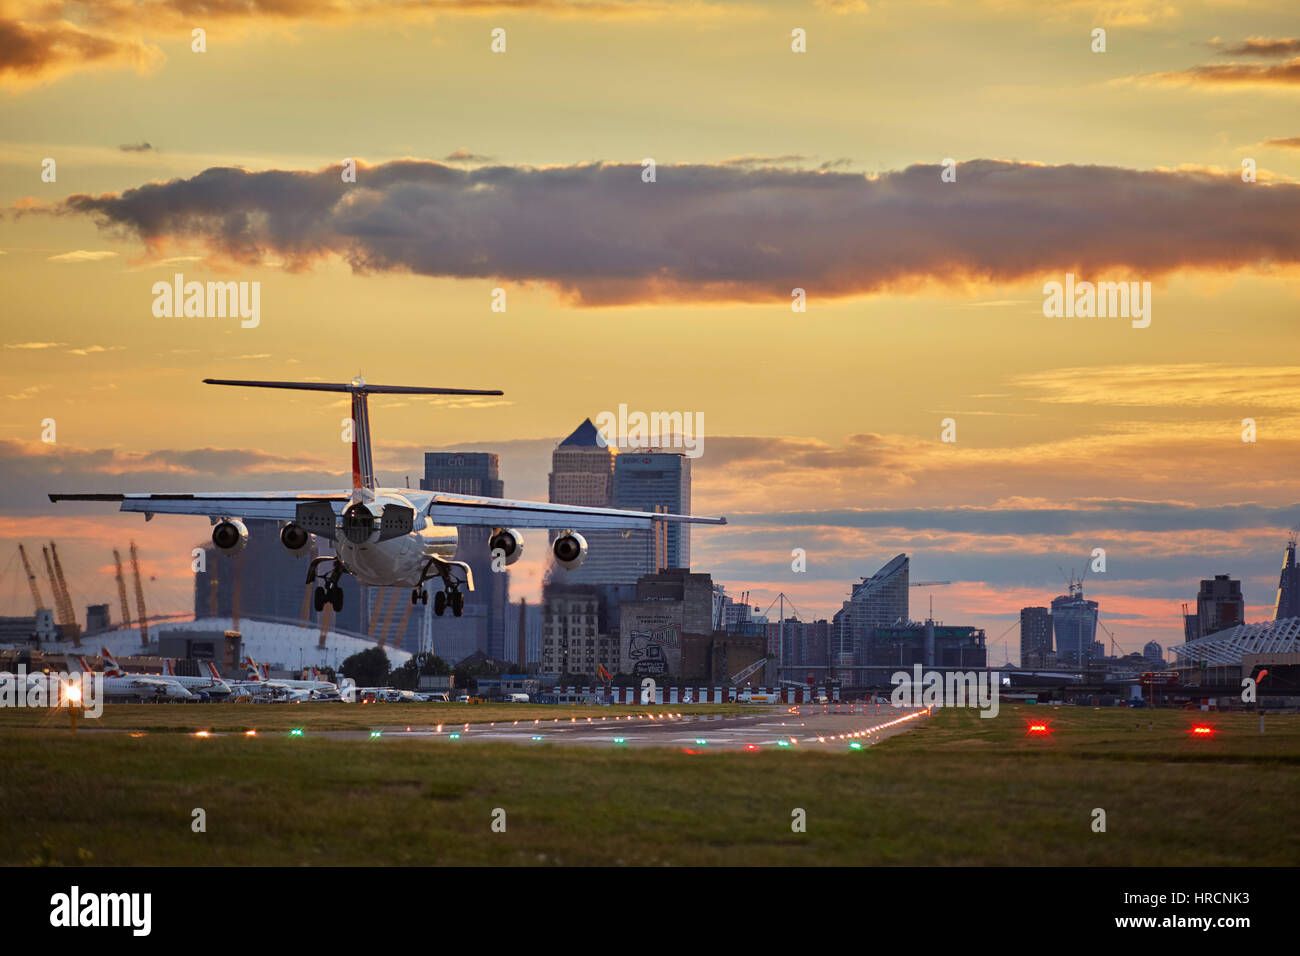 Landing Plane on London City Airport - Stock Image